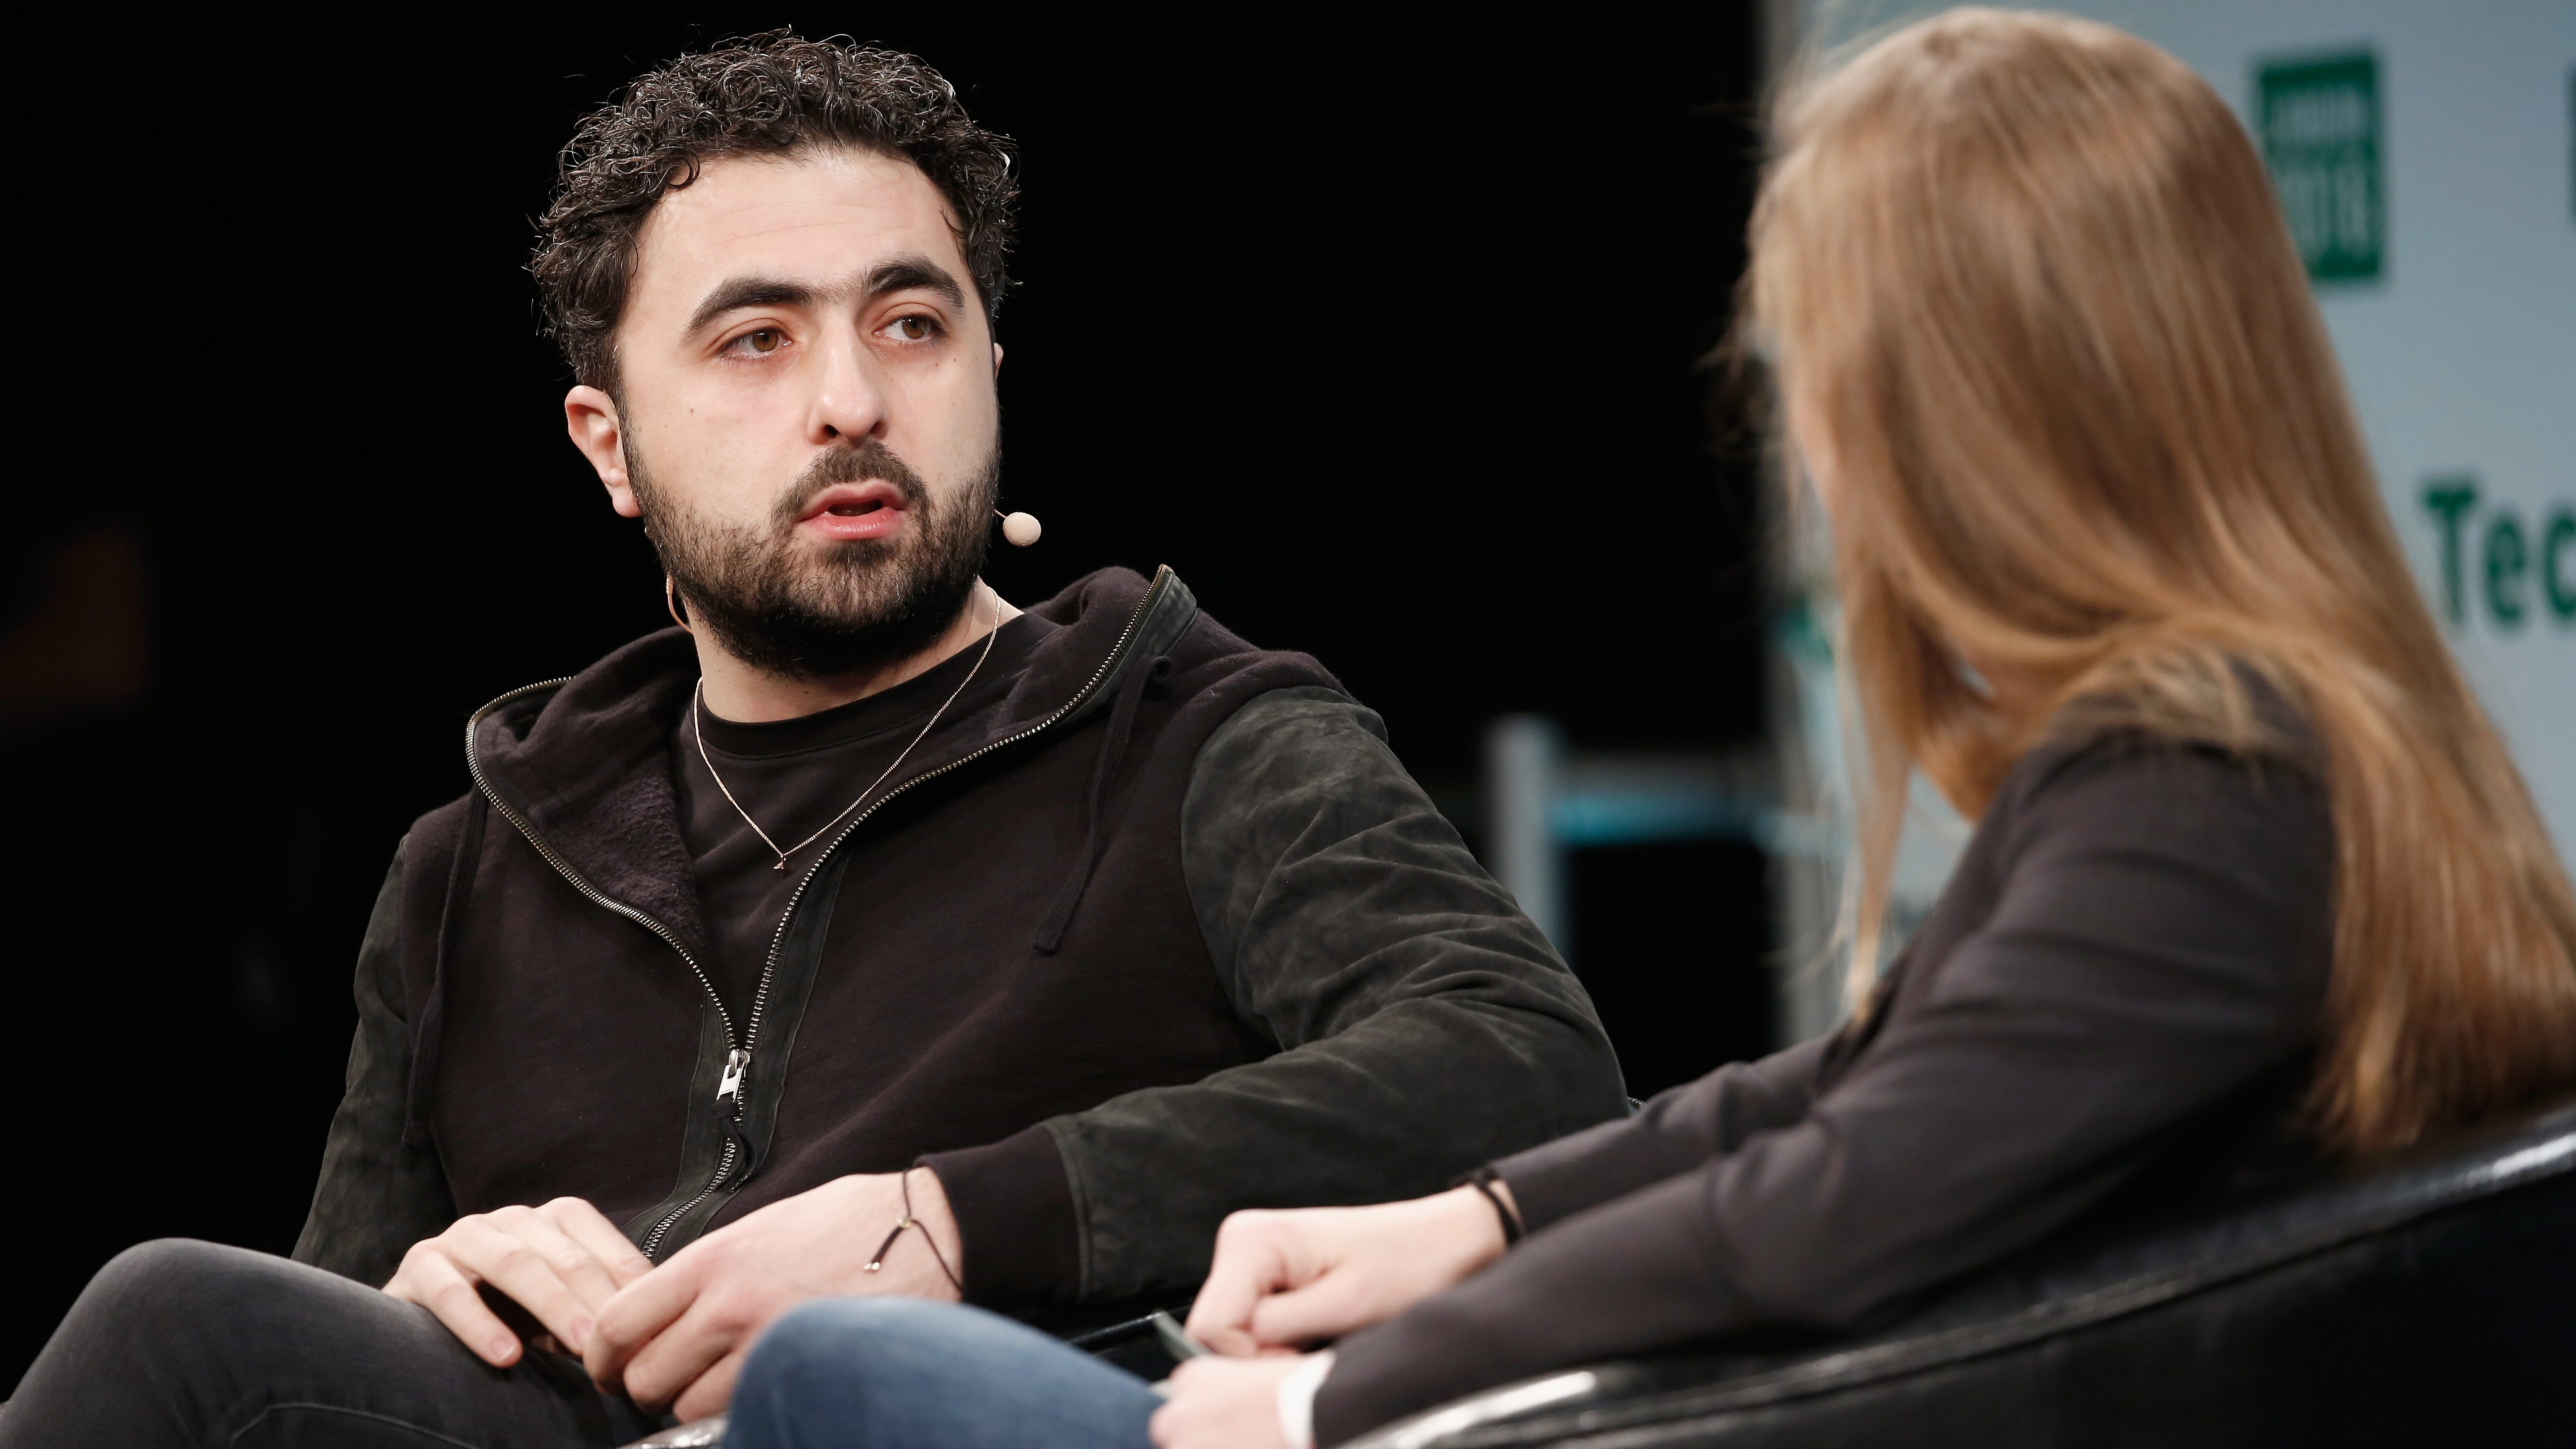 LONDON, ENGLAND - DECEMBER 05:  Co-founder of Google DeepMind Mustafa Suleyman attends a Q&A with Special Projects Editor forTechCrunch, Jordan Crook during day 1 of TechCrunch Disrupt London at the Copper Box on December 5, 2016 in London, England.  (Photo by John Phillips/Getty Images for TechCrunch) *** Local Caption *** Mustafa Suleyman;Jordan Crook